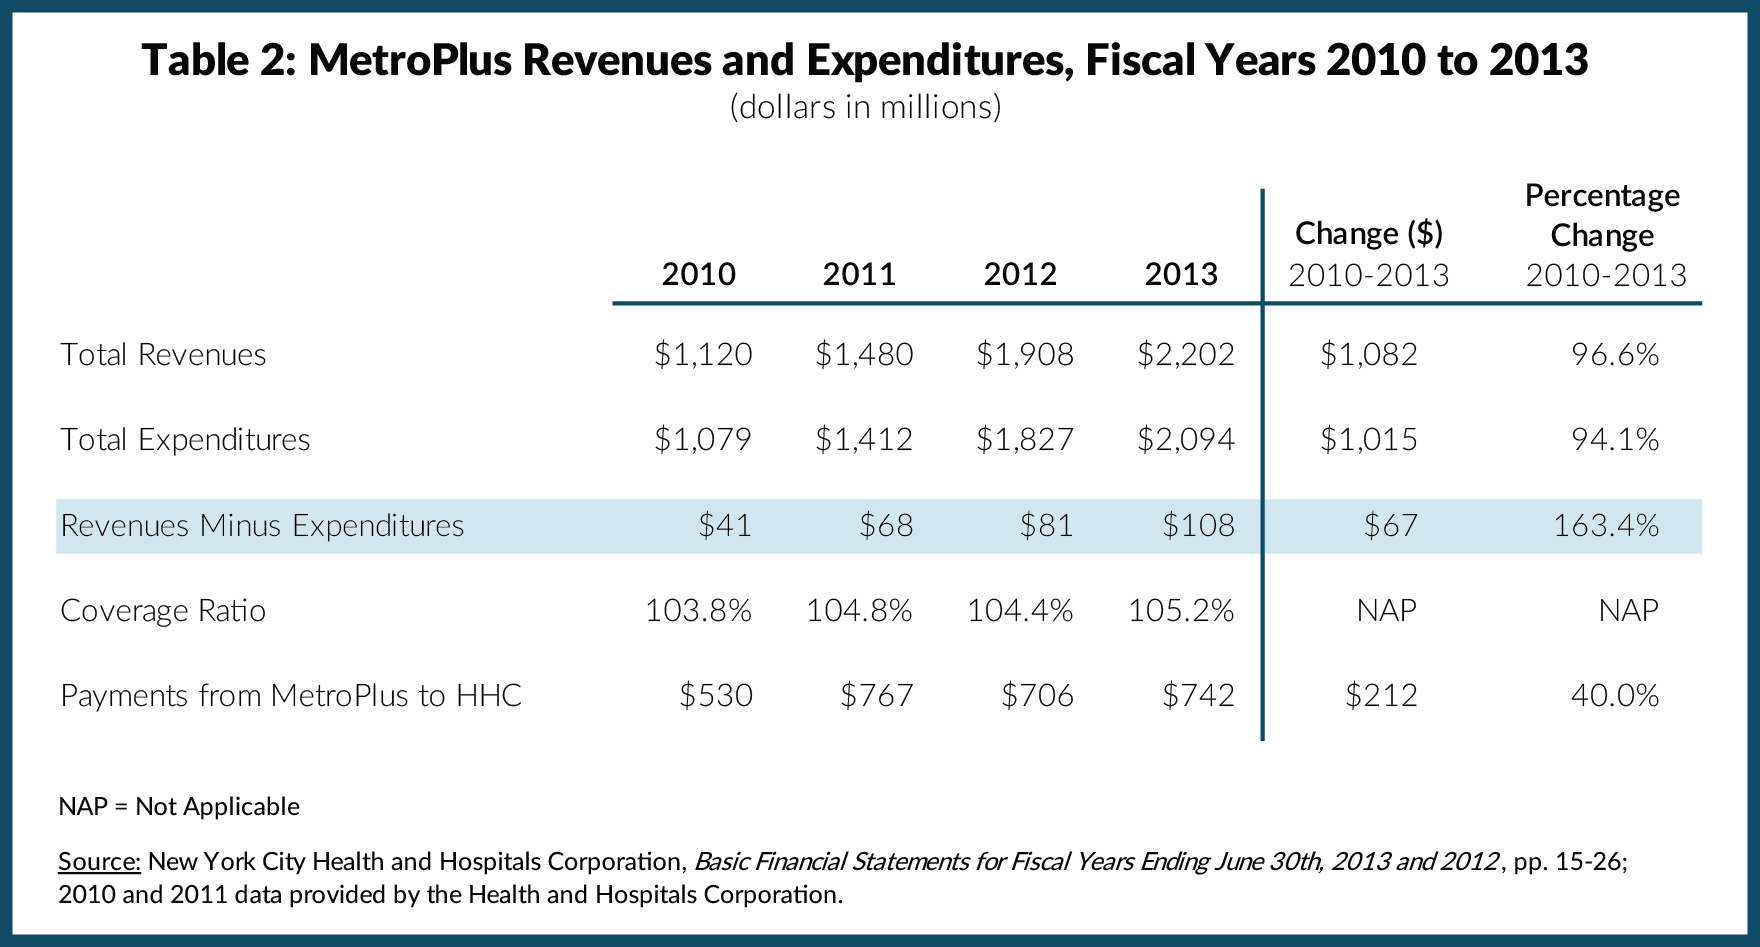 Table 2: MetroPlus Revenues and Expenditures, Fiscal Years 2010 to 2013